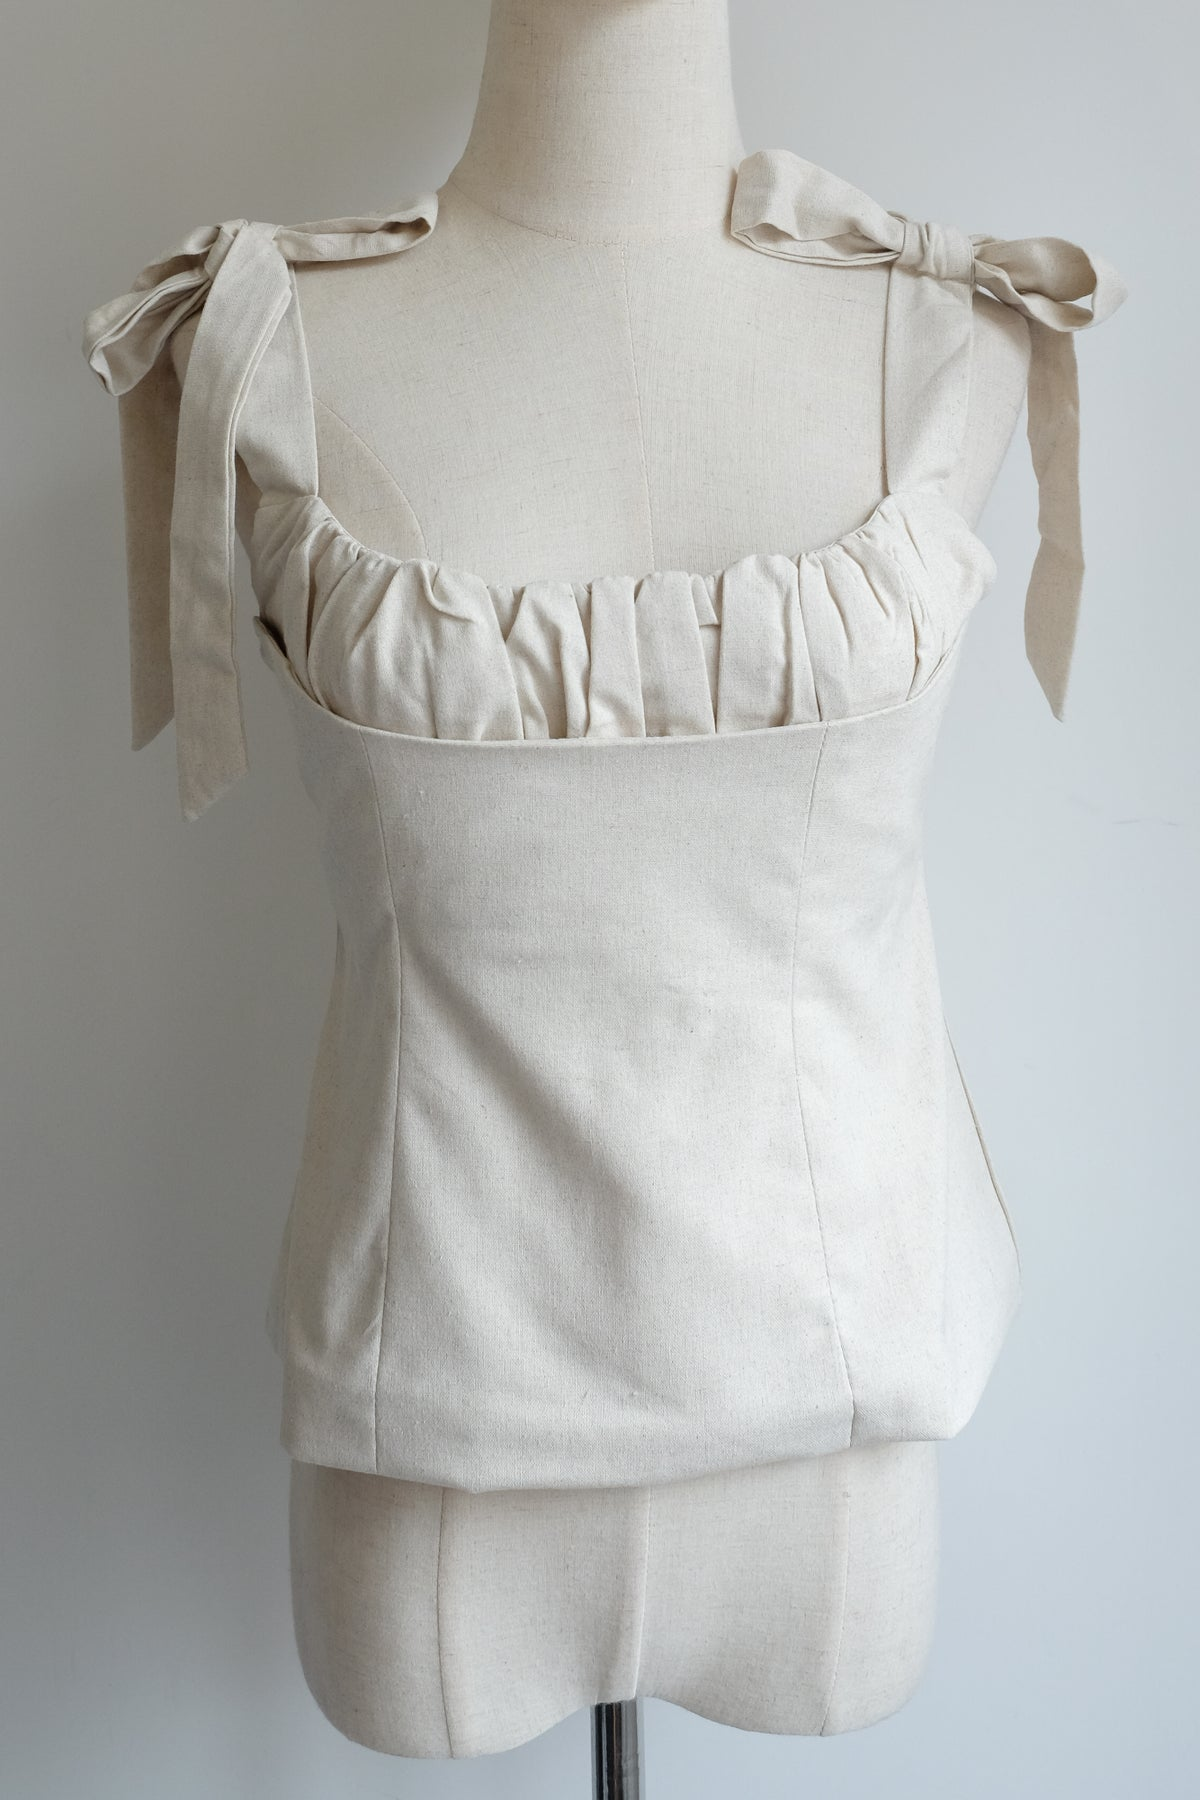 Image of SAMPLE SALE - Unreleased Ivory Vest 027